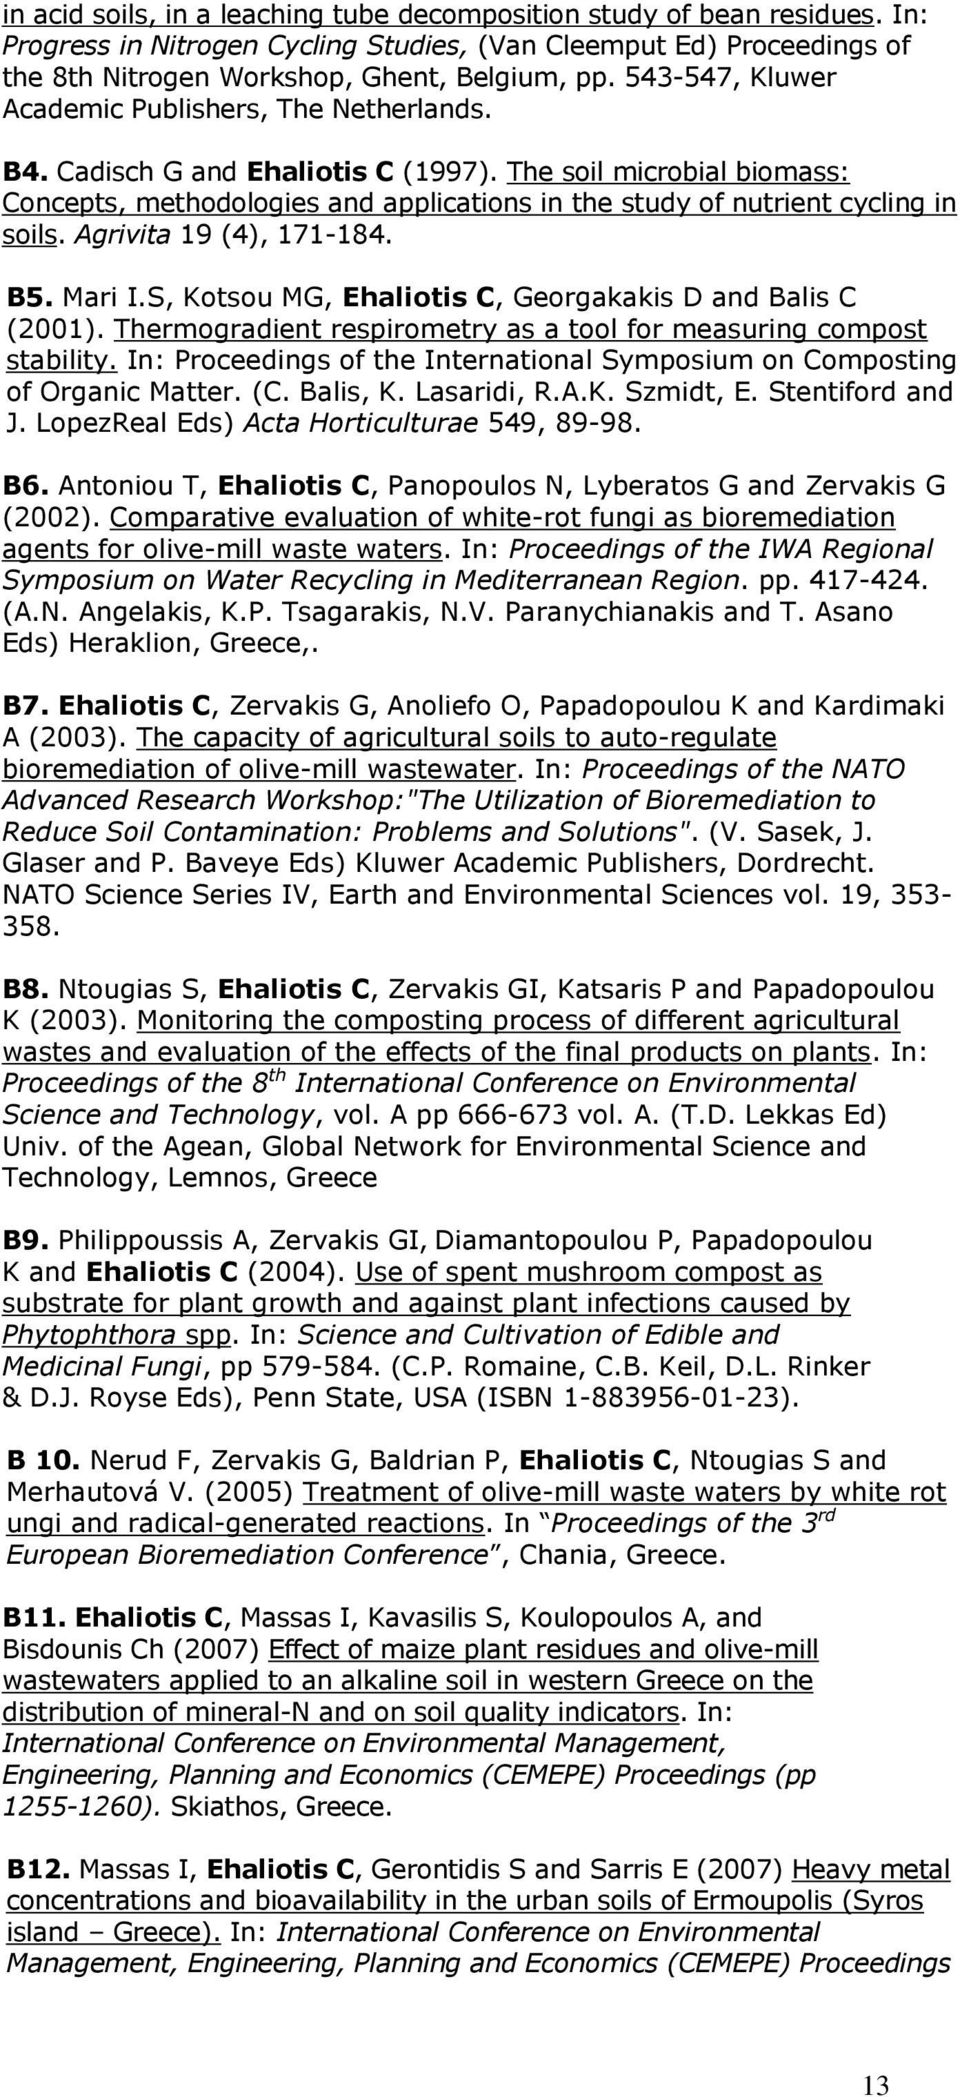 The soil microbial biomass: Concepts, methodologies and applications in the study of nutrient cycling in soils. Agrivita 19 (4), 171-184. B5. Mari I.